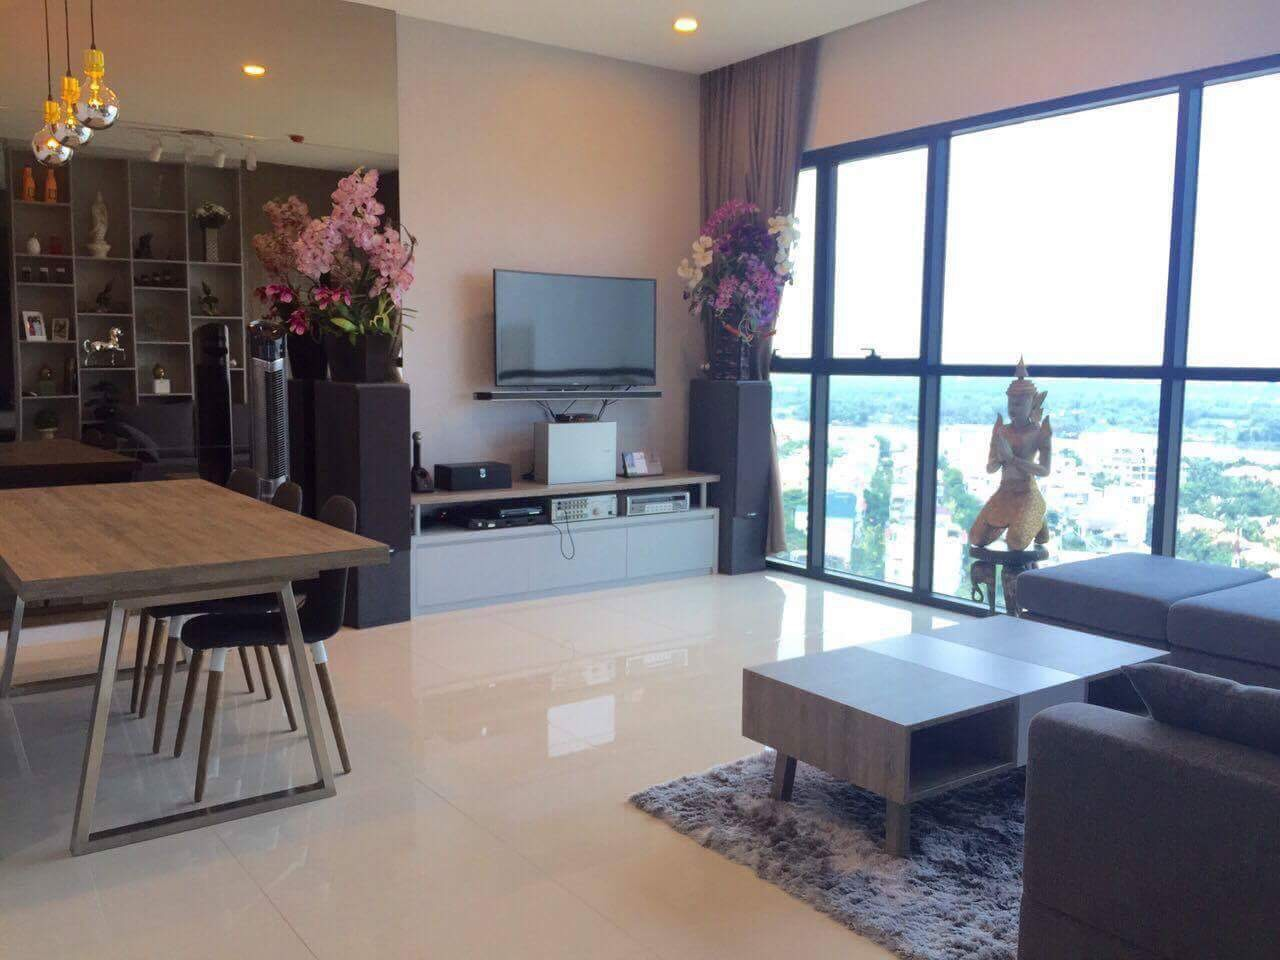 apartment for rent in district 2 hcmc the ascent apartment for rent in district 2 hcmc D217148 (1)